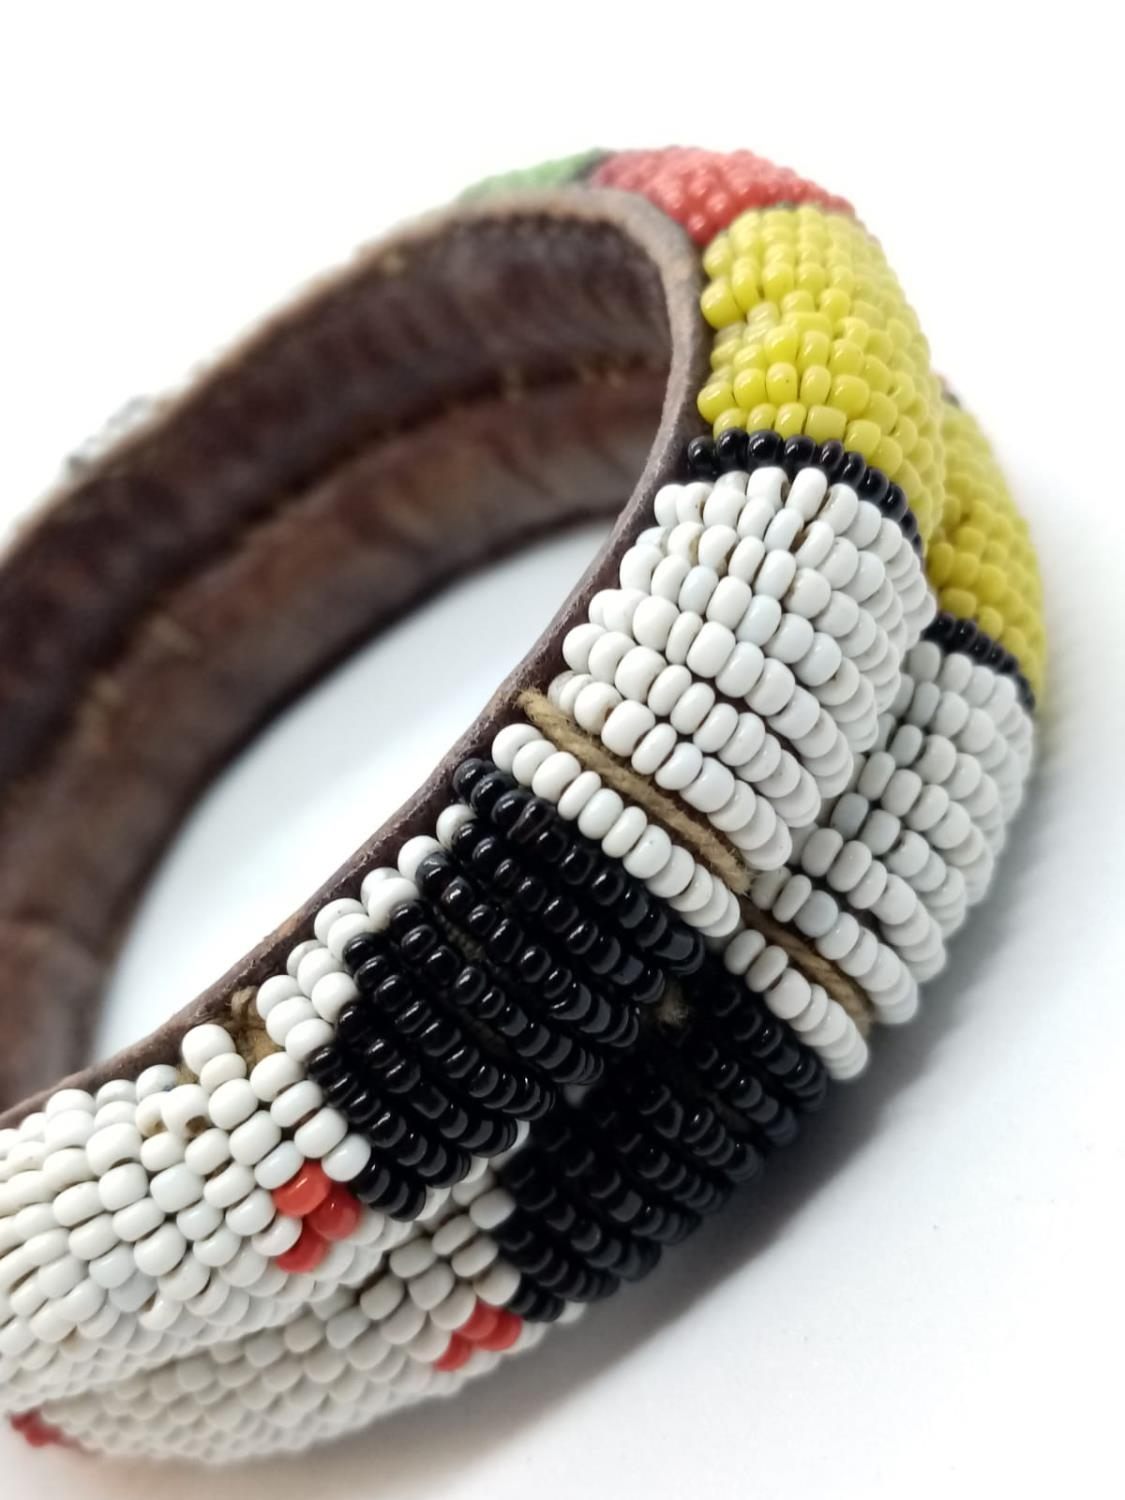 Native American hand woven leather BANGLE. - Image 4 of 4